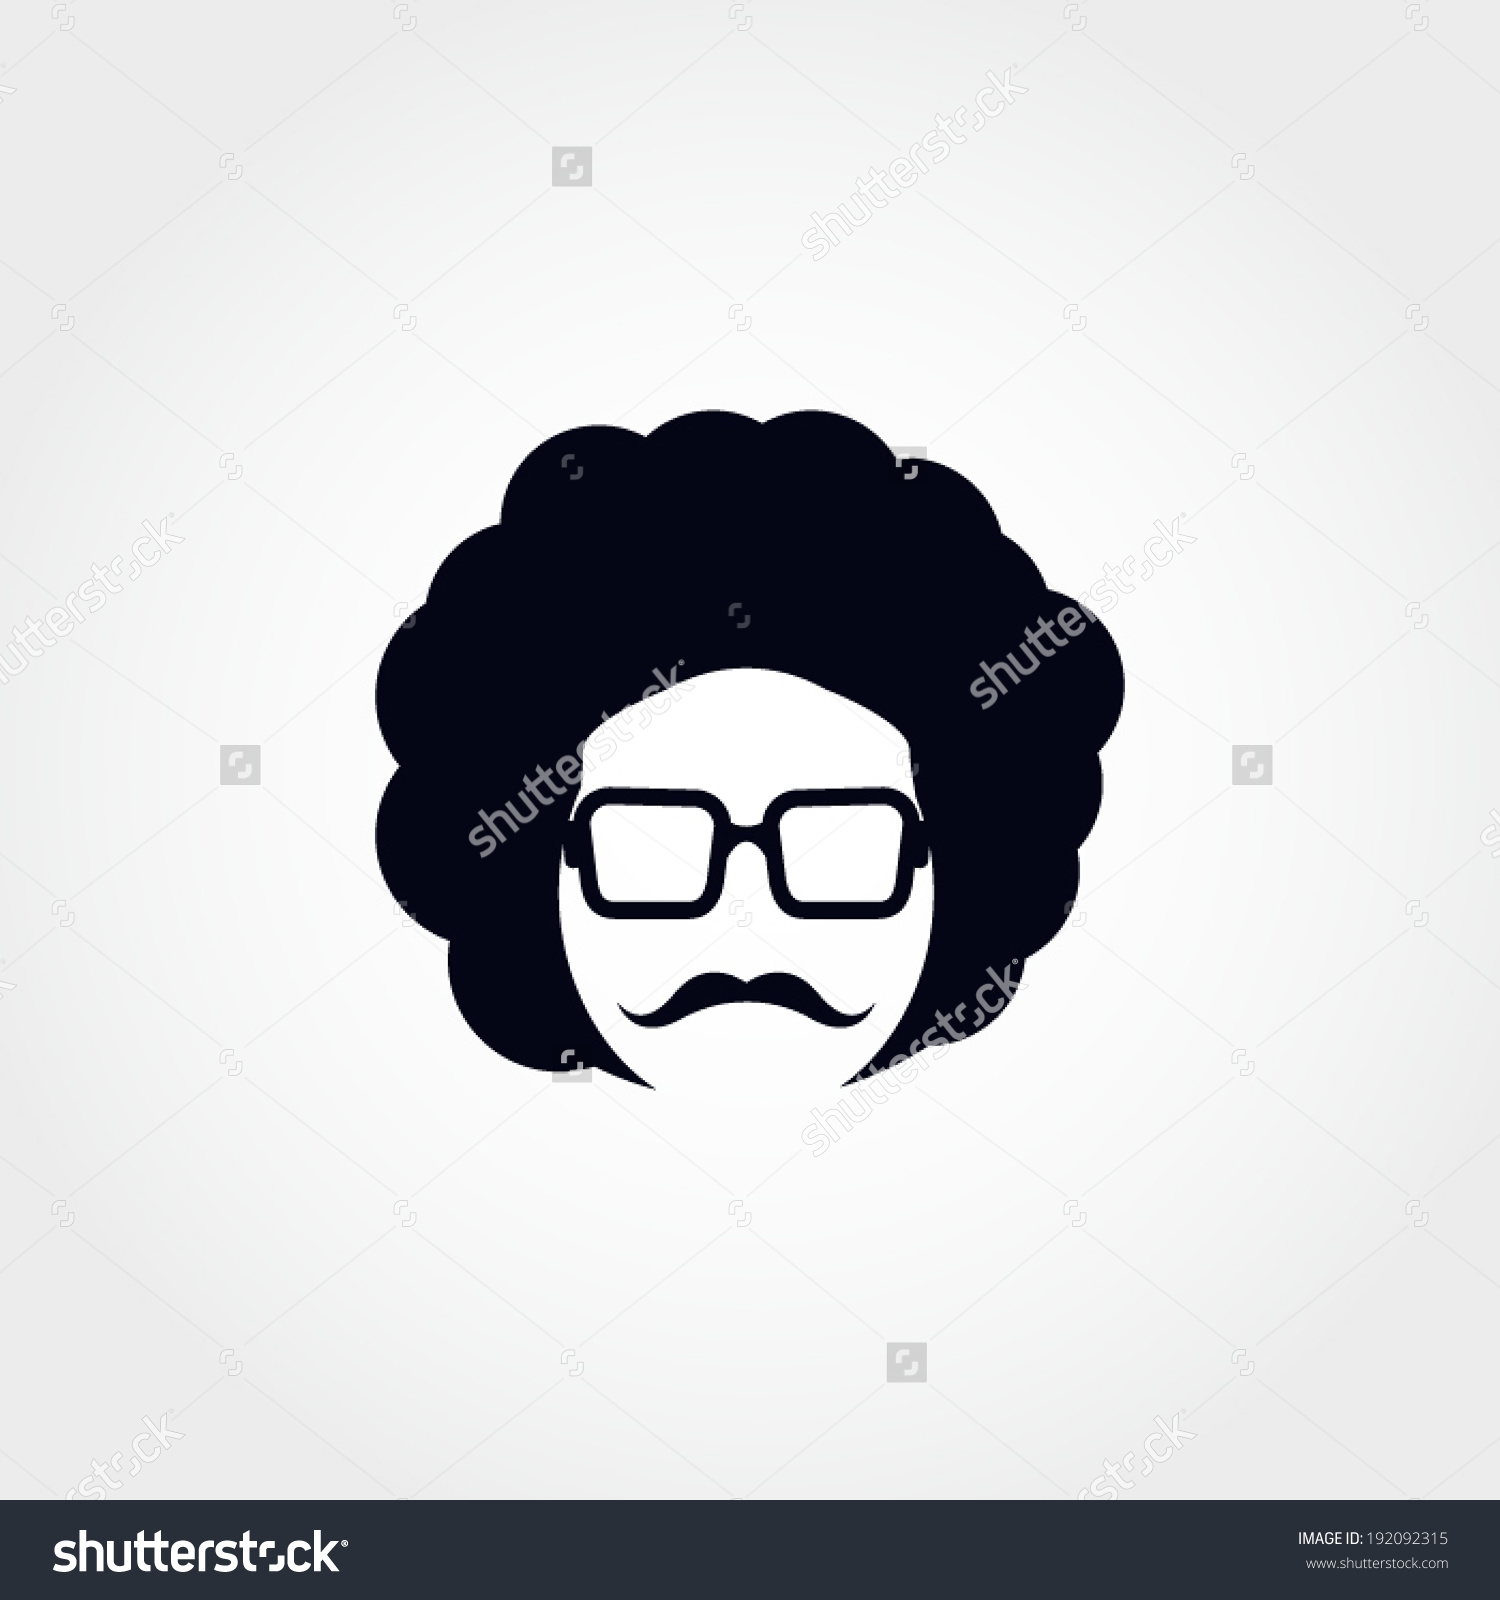 Afro Man Vector Illustration Stock Vector 192092315.